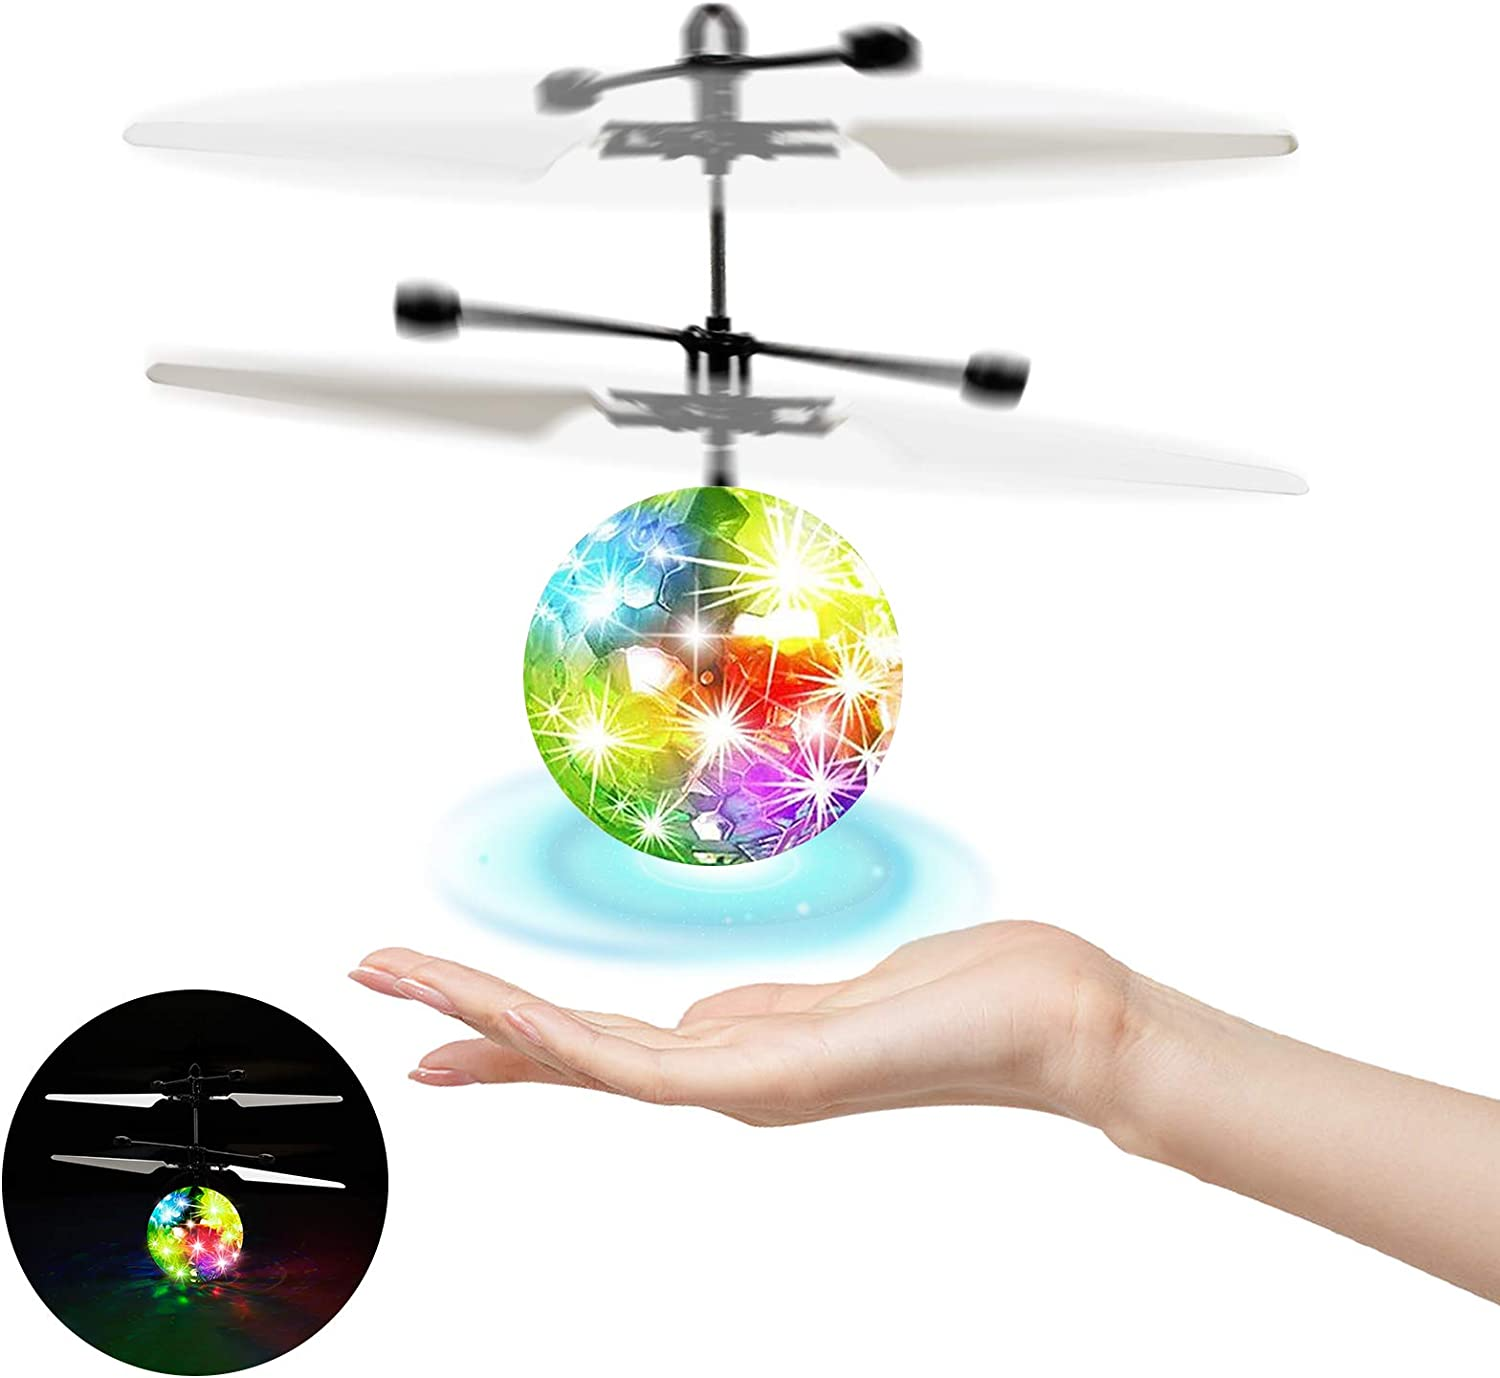 Flying Ball Kids Toys Flying Toys for Kids Hand Control LED Disco Lights RC Flying Drone Toys for Boys Girls 7 8 9 10 11 12 Birthday Indoor Outdoor Rechargeable